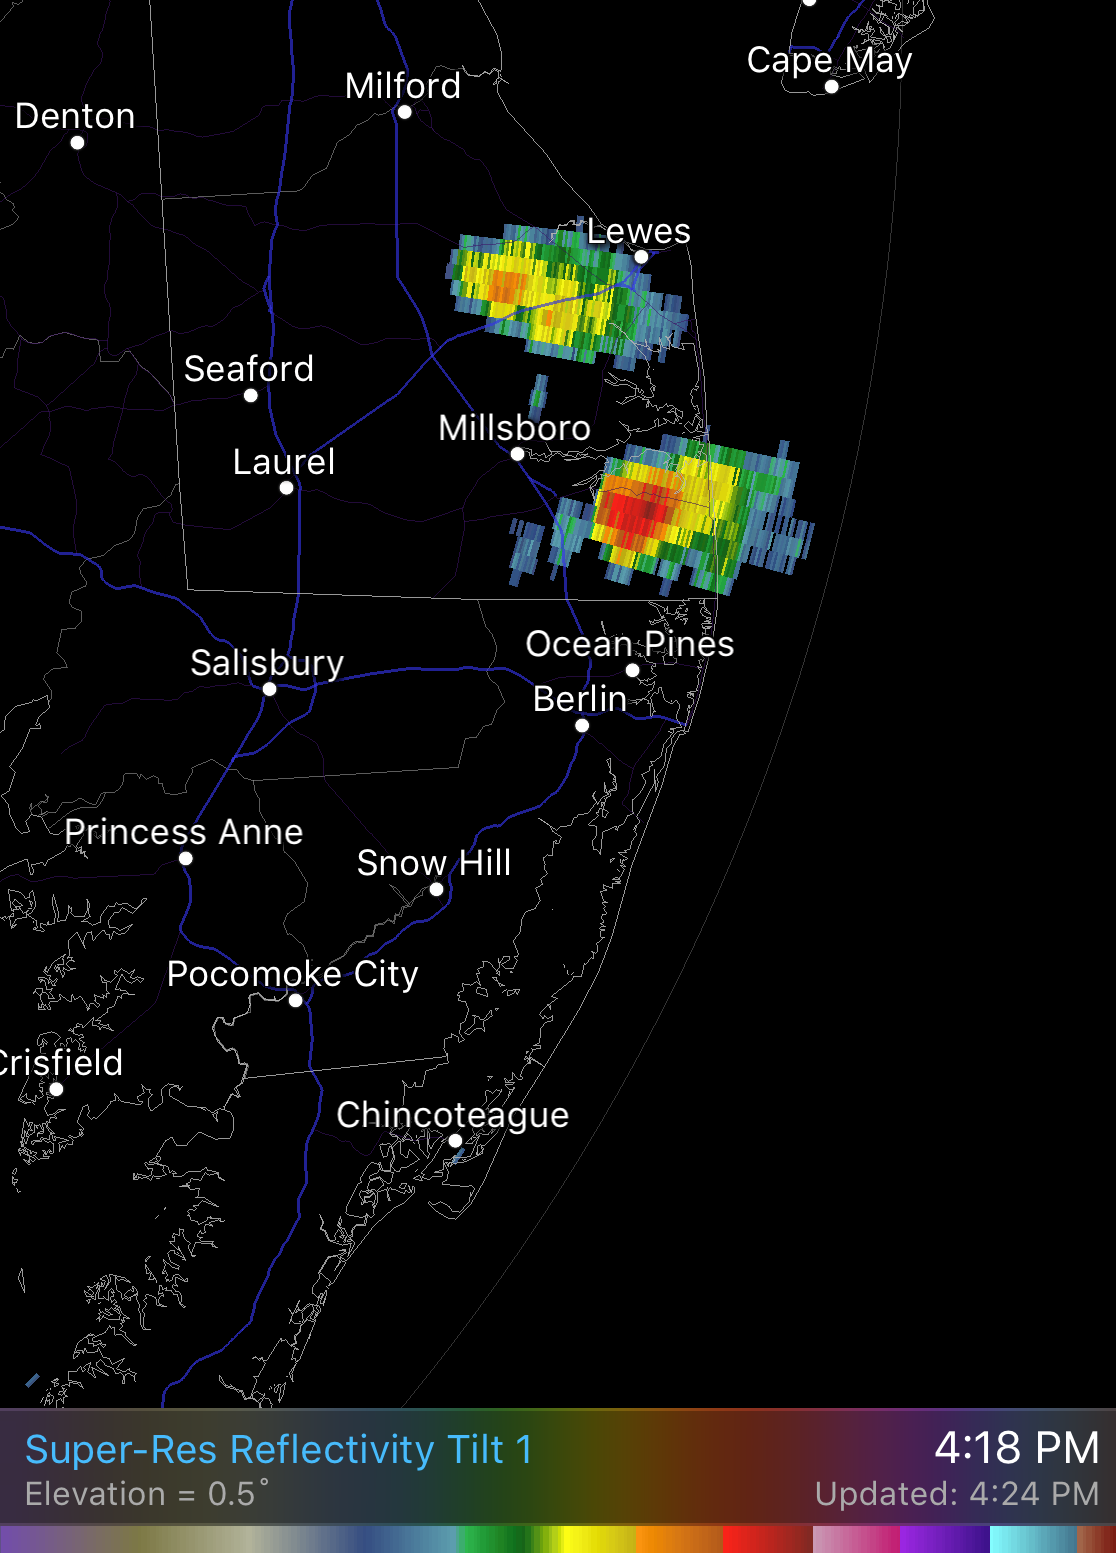 A single-cell thunderstorm is developing over Ocean View, Delaware. This is based on the radar.